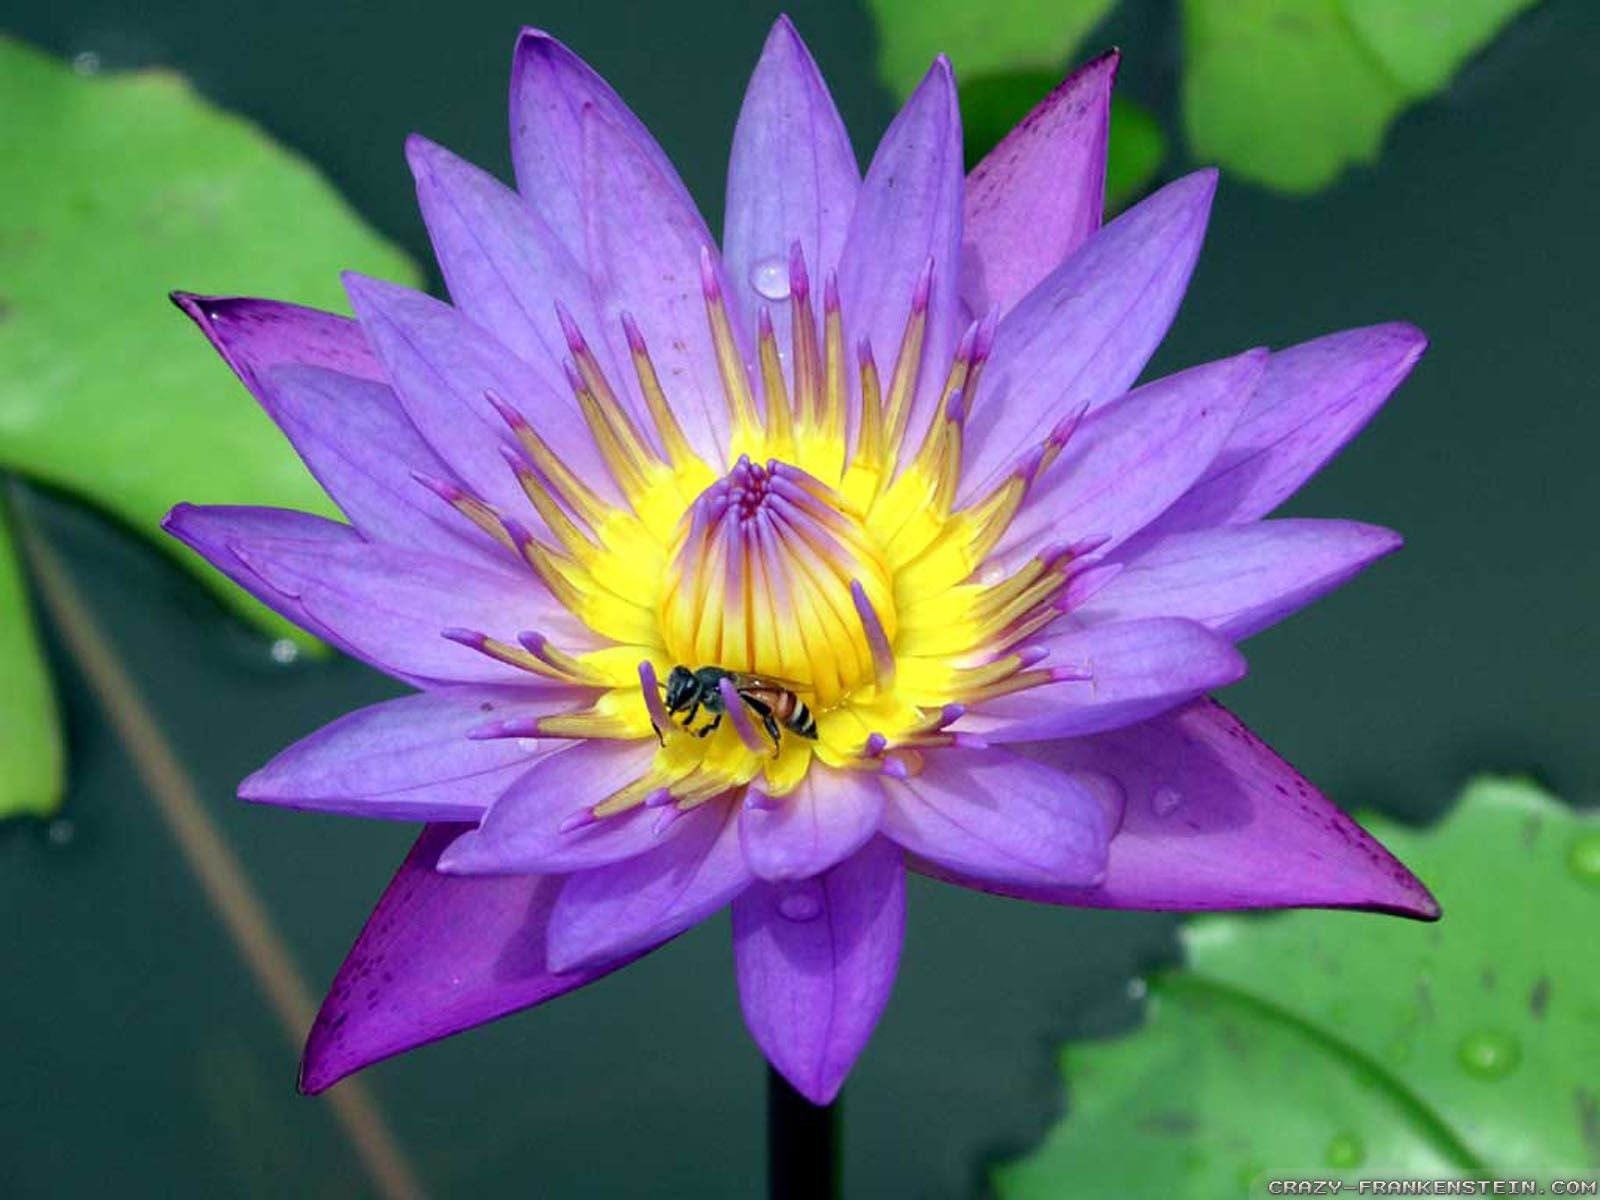 Purple Lotus Flower Wallpaper For Iphone Free Download > SubWallpaper